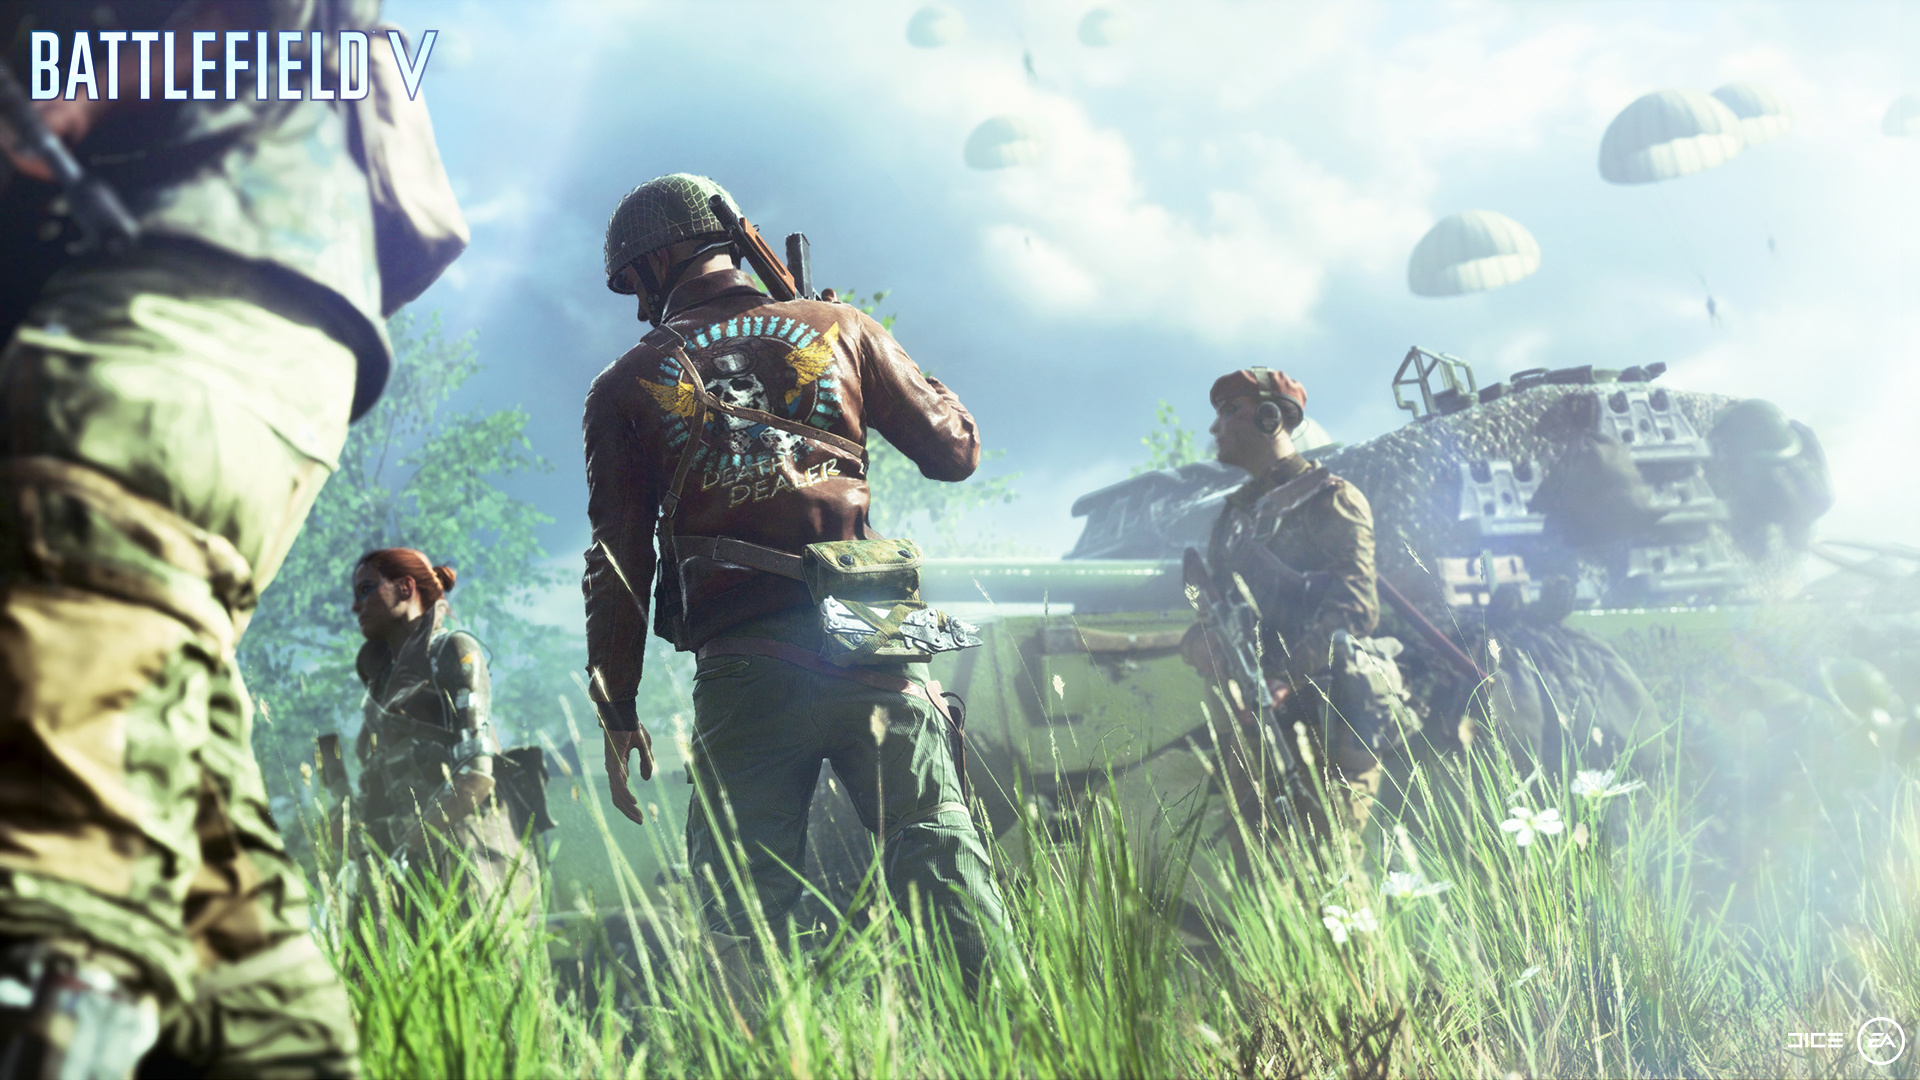 battlefield 5 s battle royale mode isn t being made by dice vg247